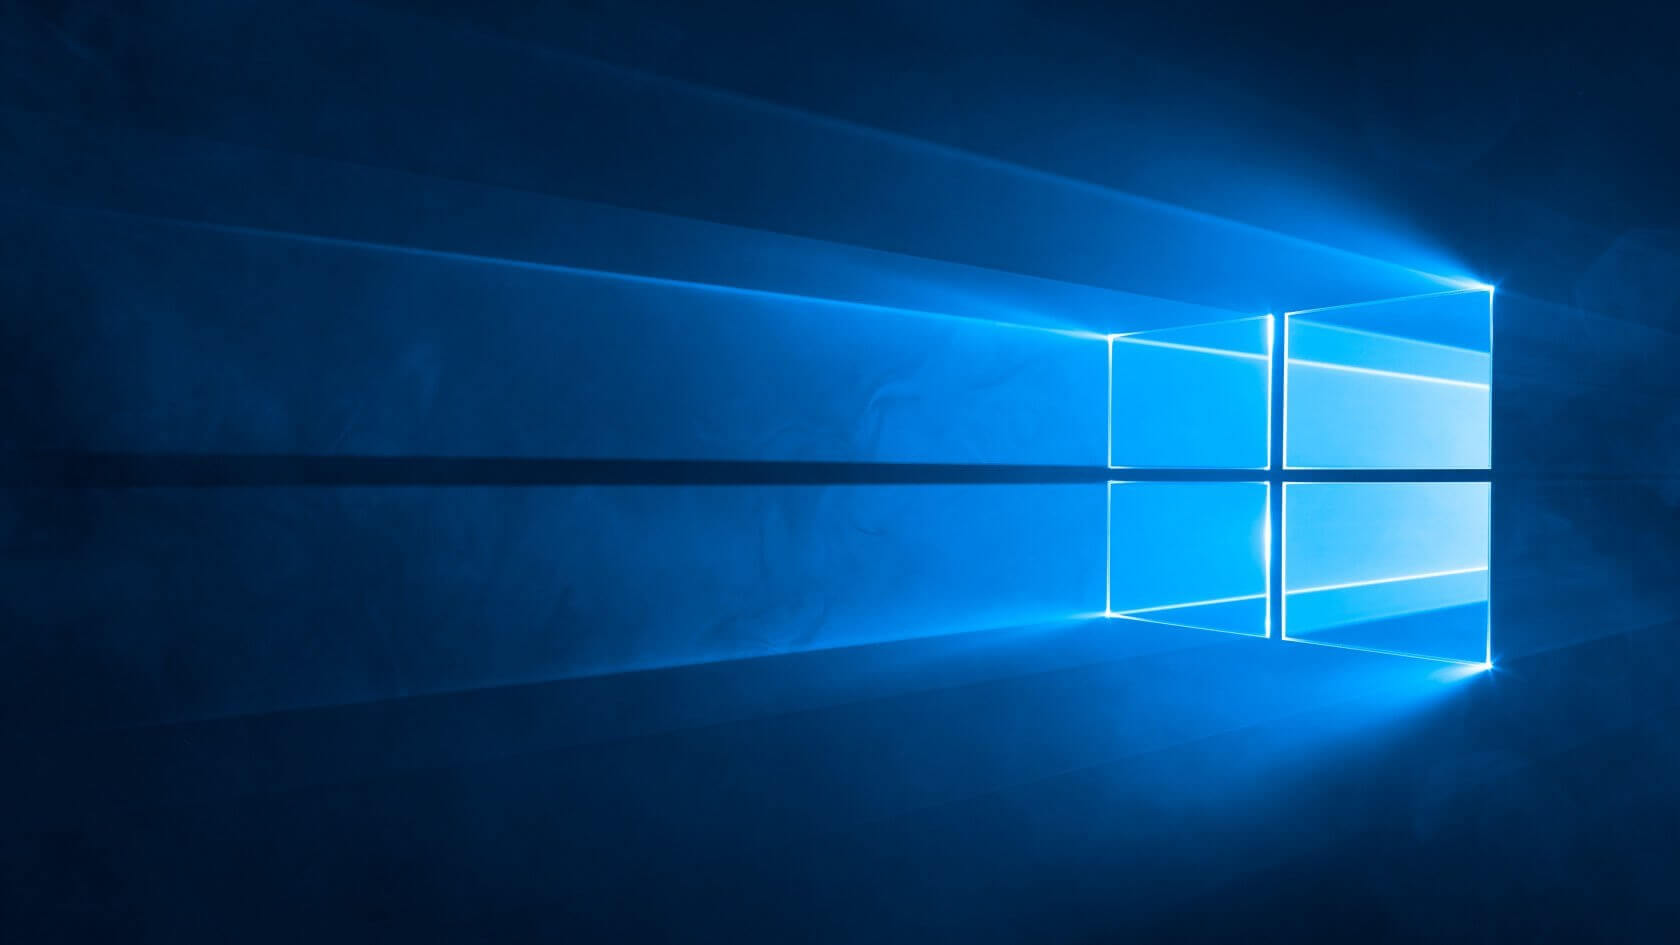 Microsoft plans to separate optional Windows 10 updates from security patches